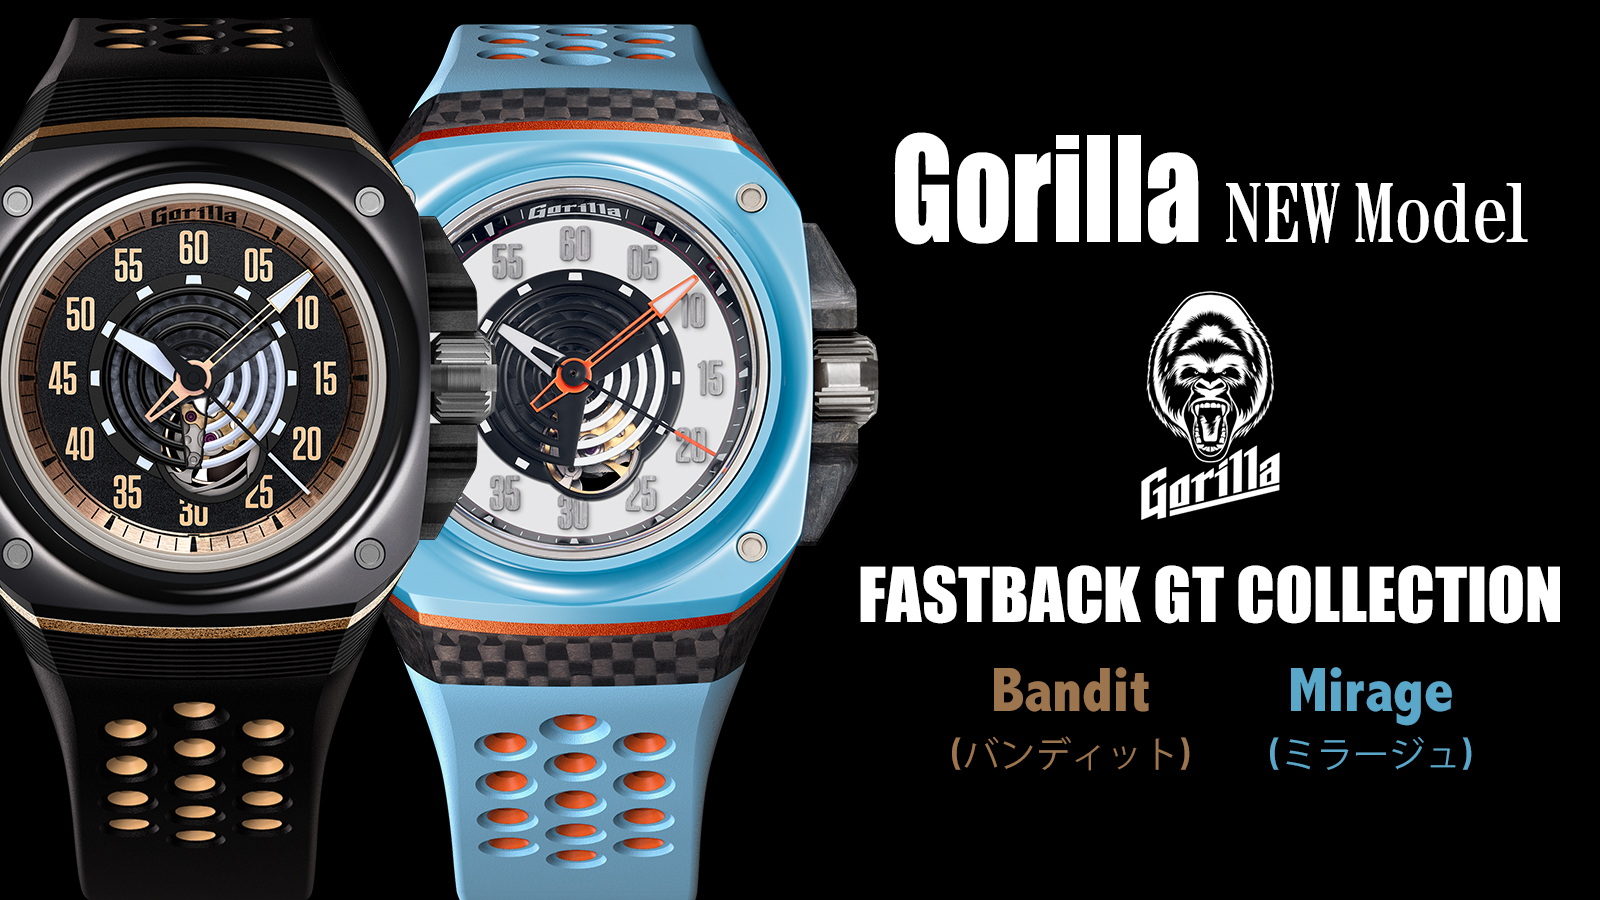 Gorilla 第2弾となる新作「FASTBACK GT COLLECTION 」発表